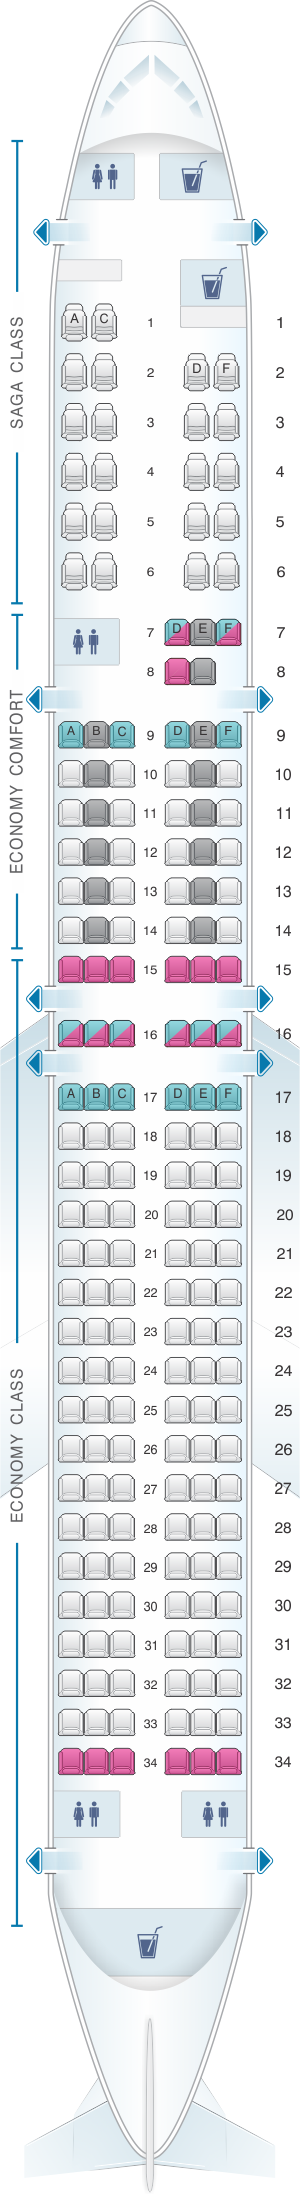 Seat map icelandair boeing  also pinterest airplanes rh